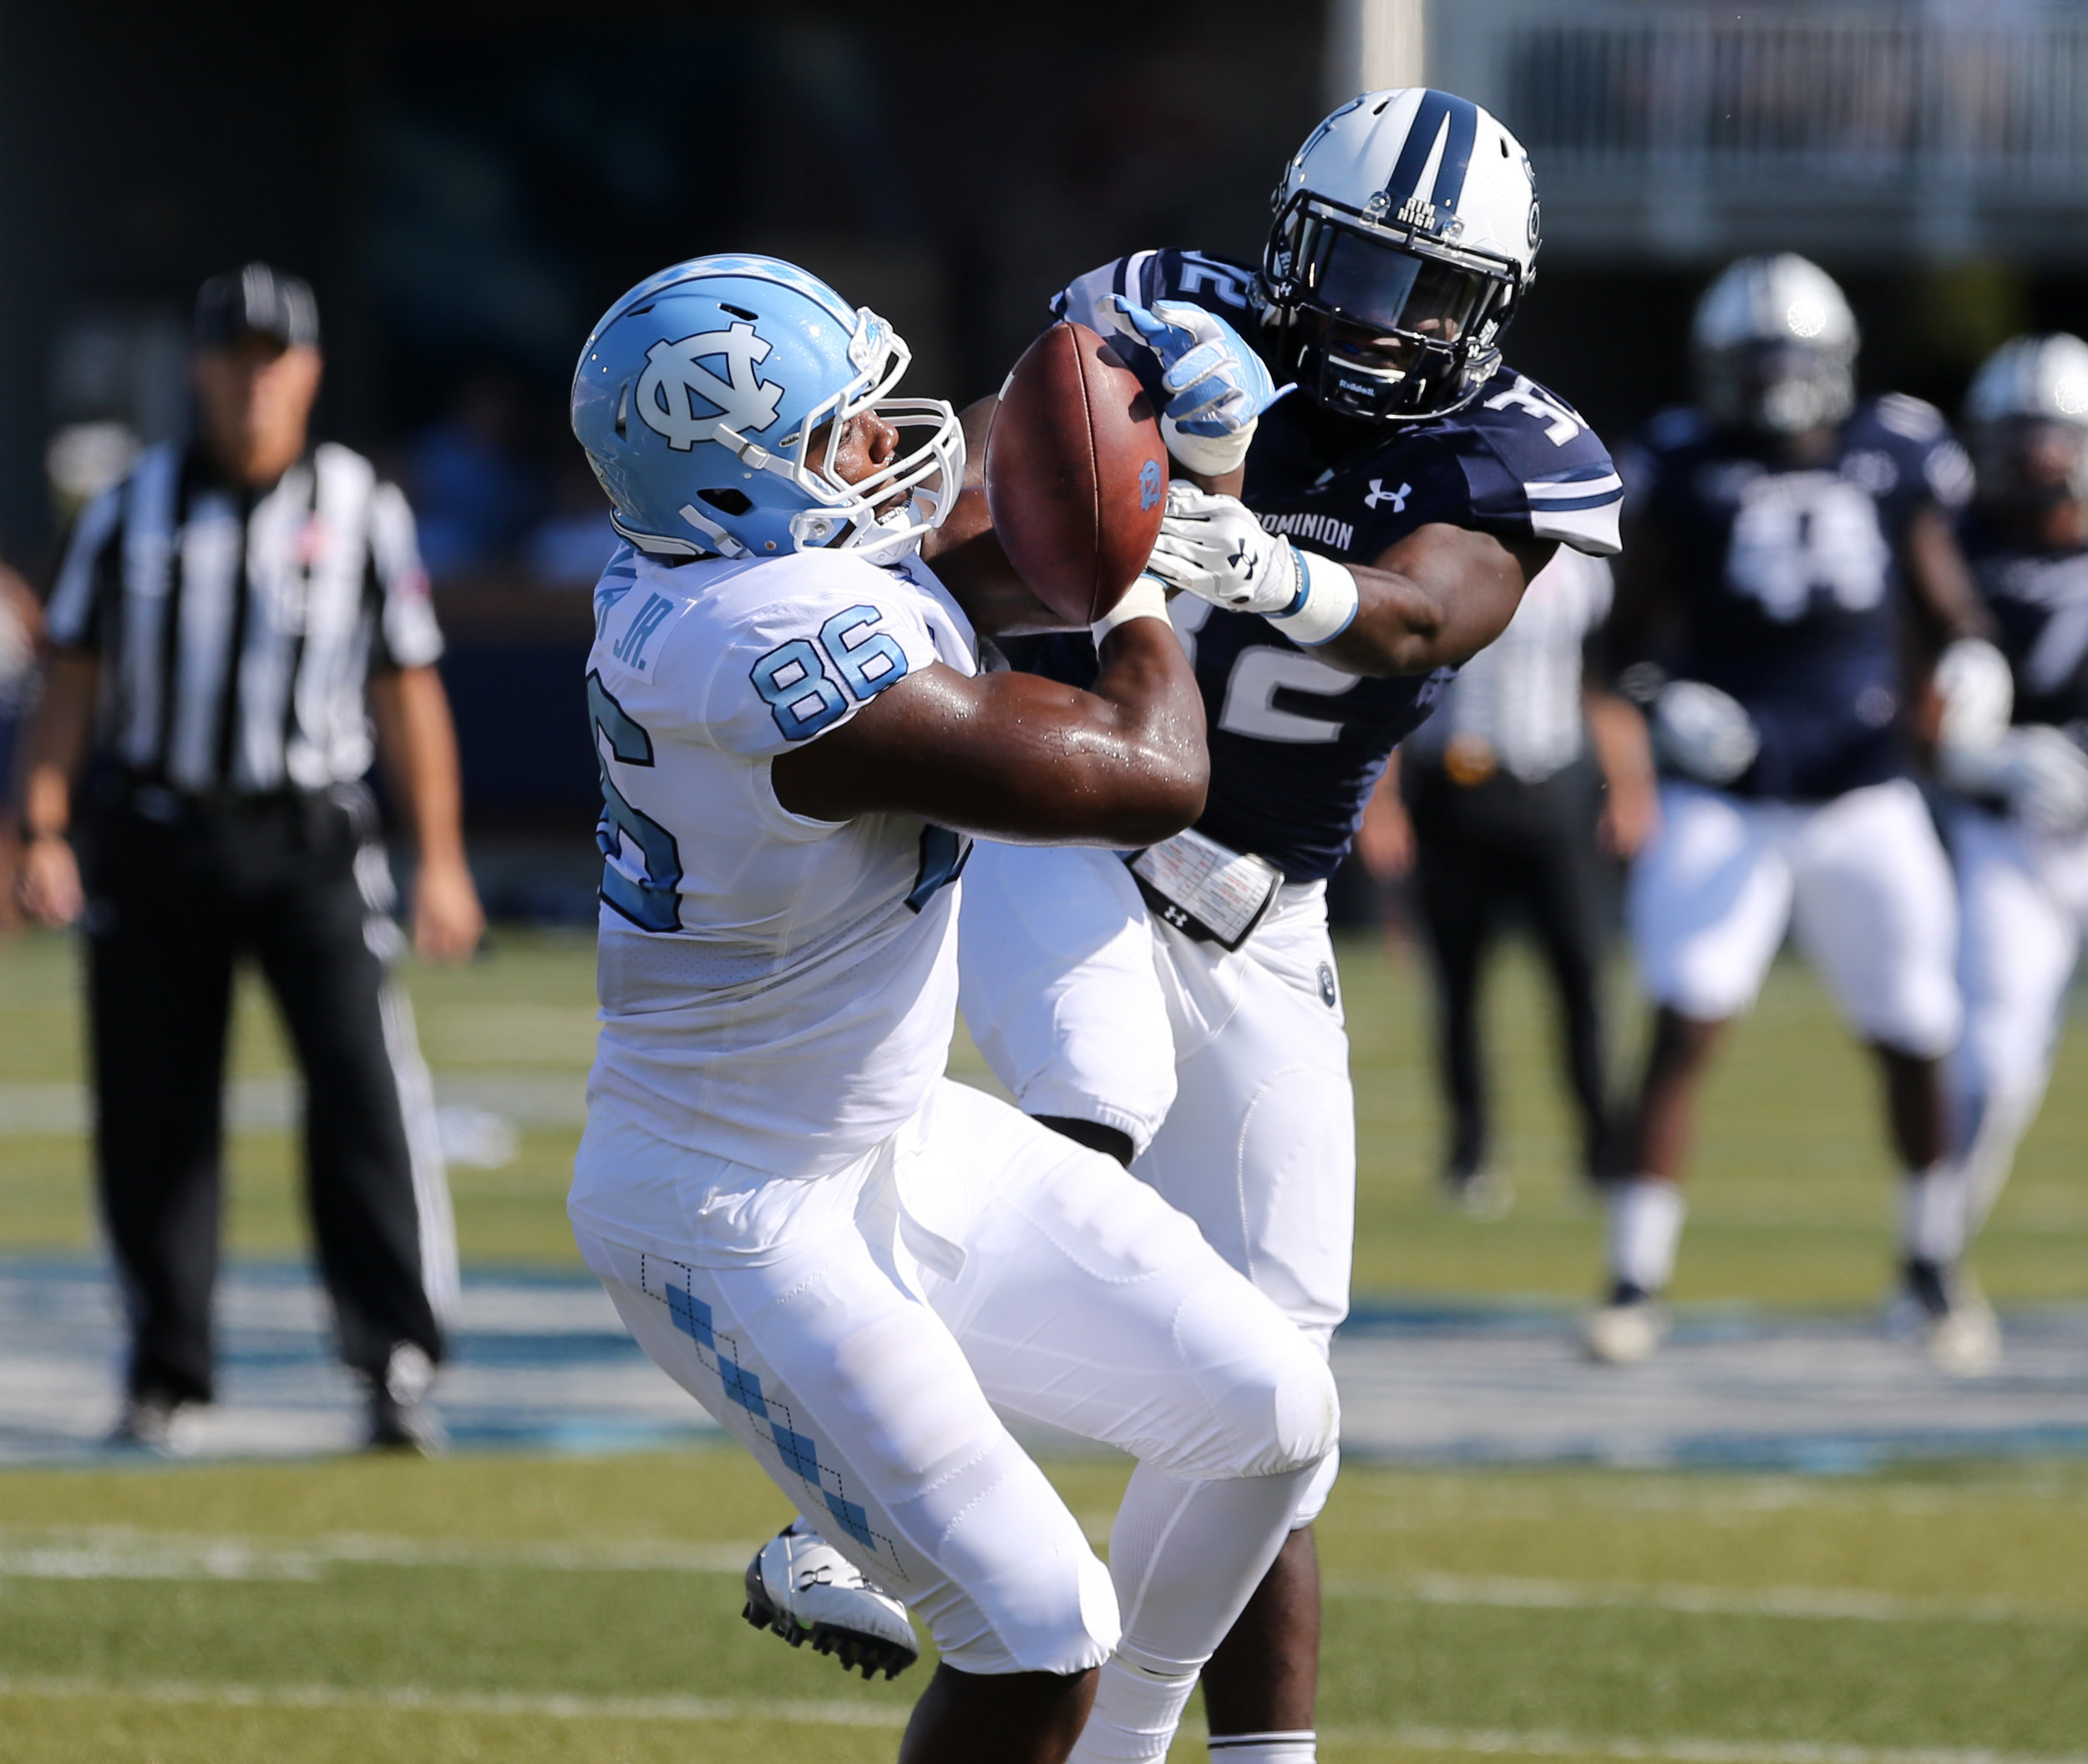 Old Dominion's Jordan Young (32) breaks up a pass intended for UNC's Carl Tucker (86) during the first half of an NCAA college football game, Saturday, Sept. 16, 2017 in Norfolk, Va.